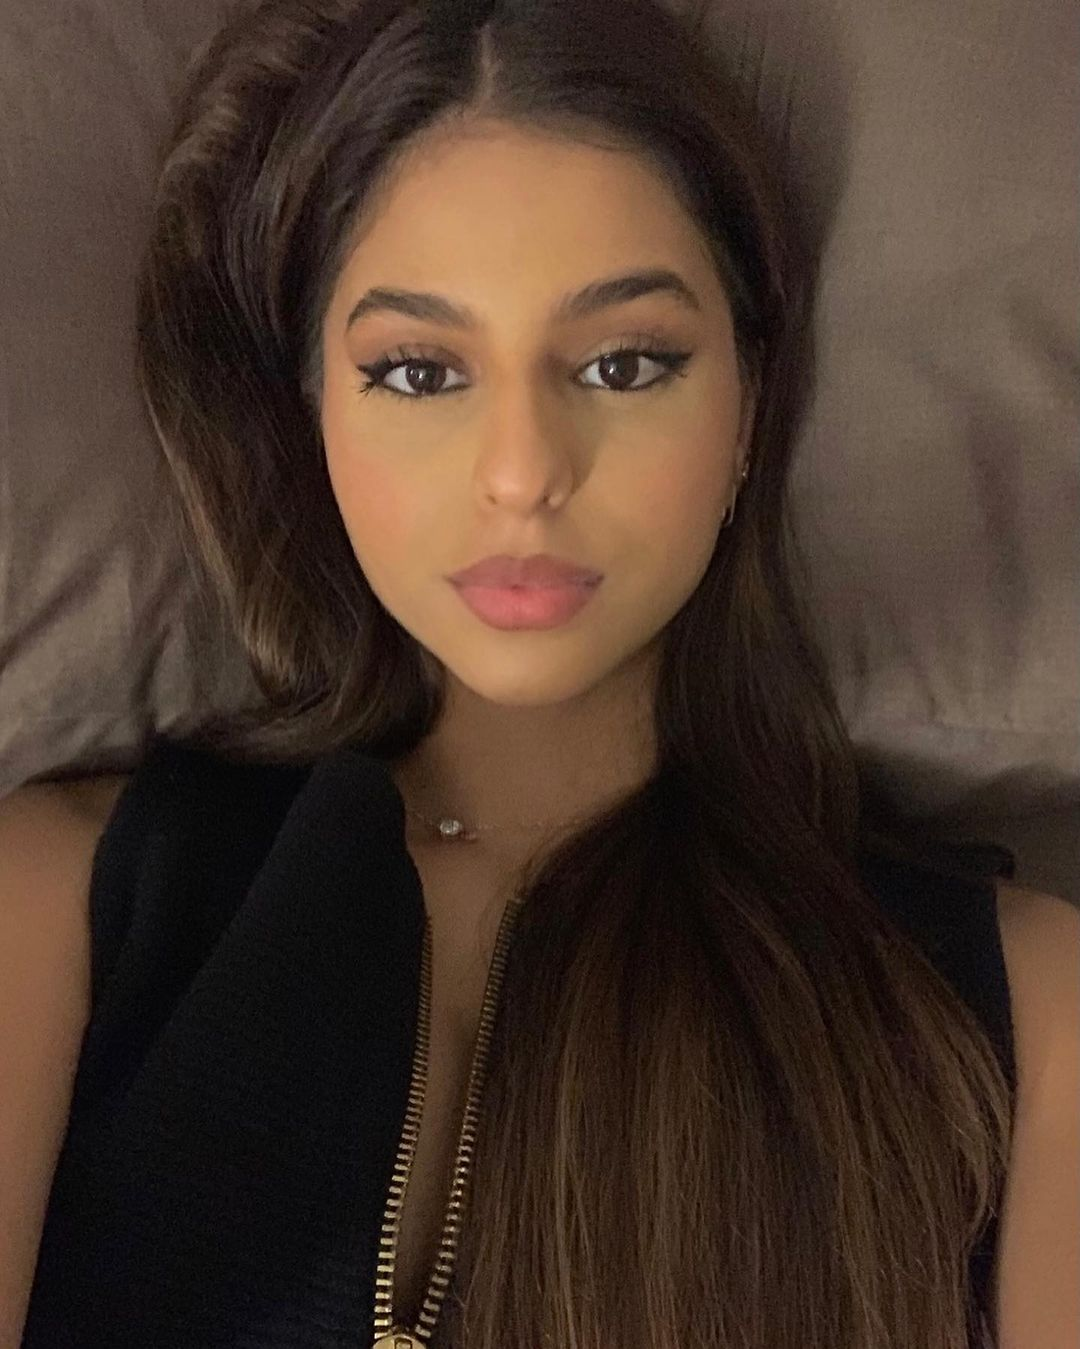 Beauty Looks: Suhana Khan posts new selfies asking if she looks sort of a grown-up see Amitabh Bachchan granddaughter Navya reply